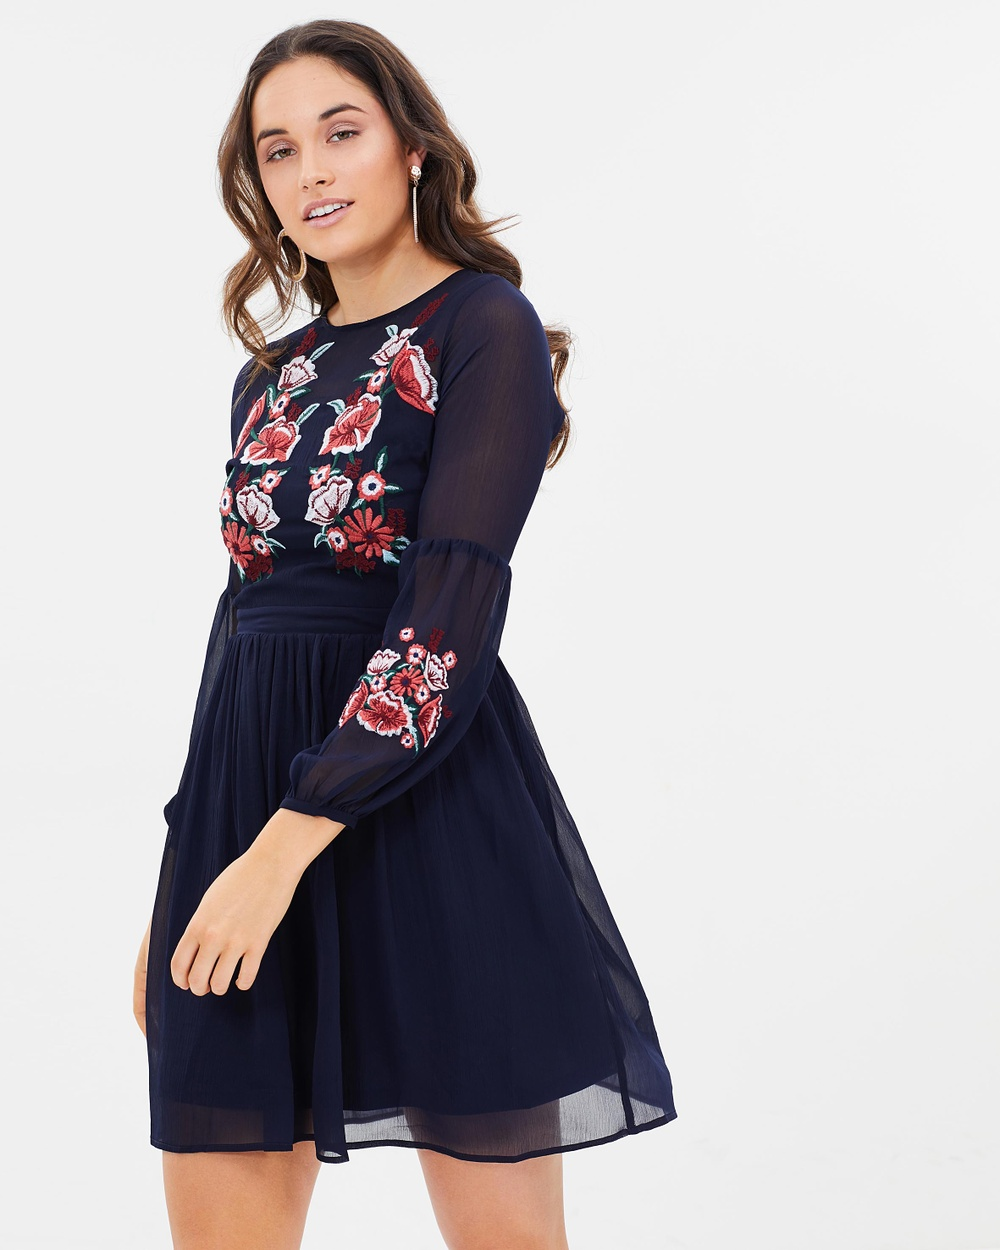 Dorothy Perkins Embroidered Chiffon Fit and Flare Dress Dresses Navy Blue Embroidered Chiffon Fit-and-Flare Dress